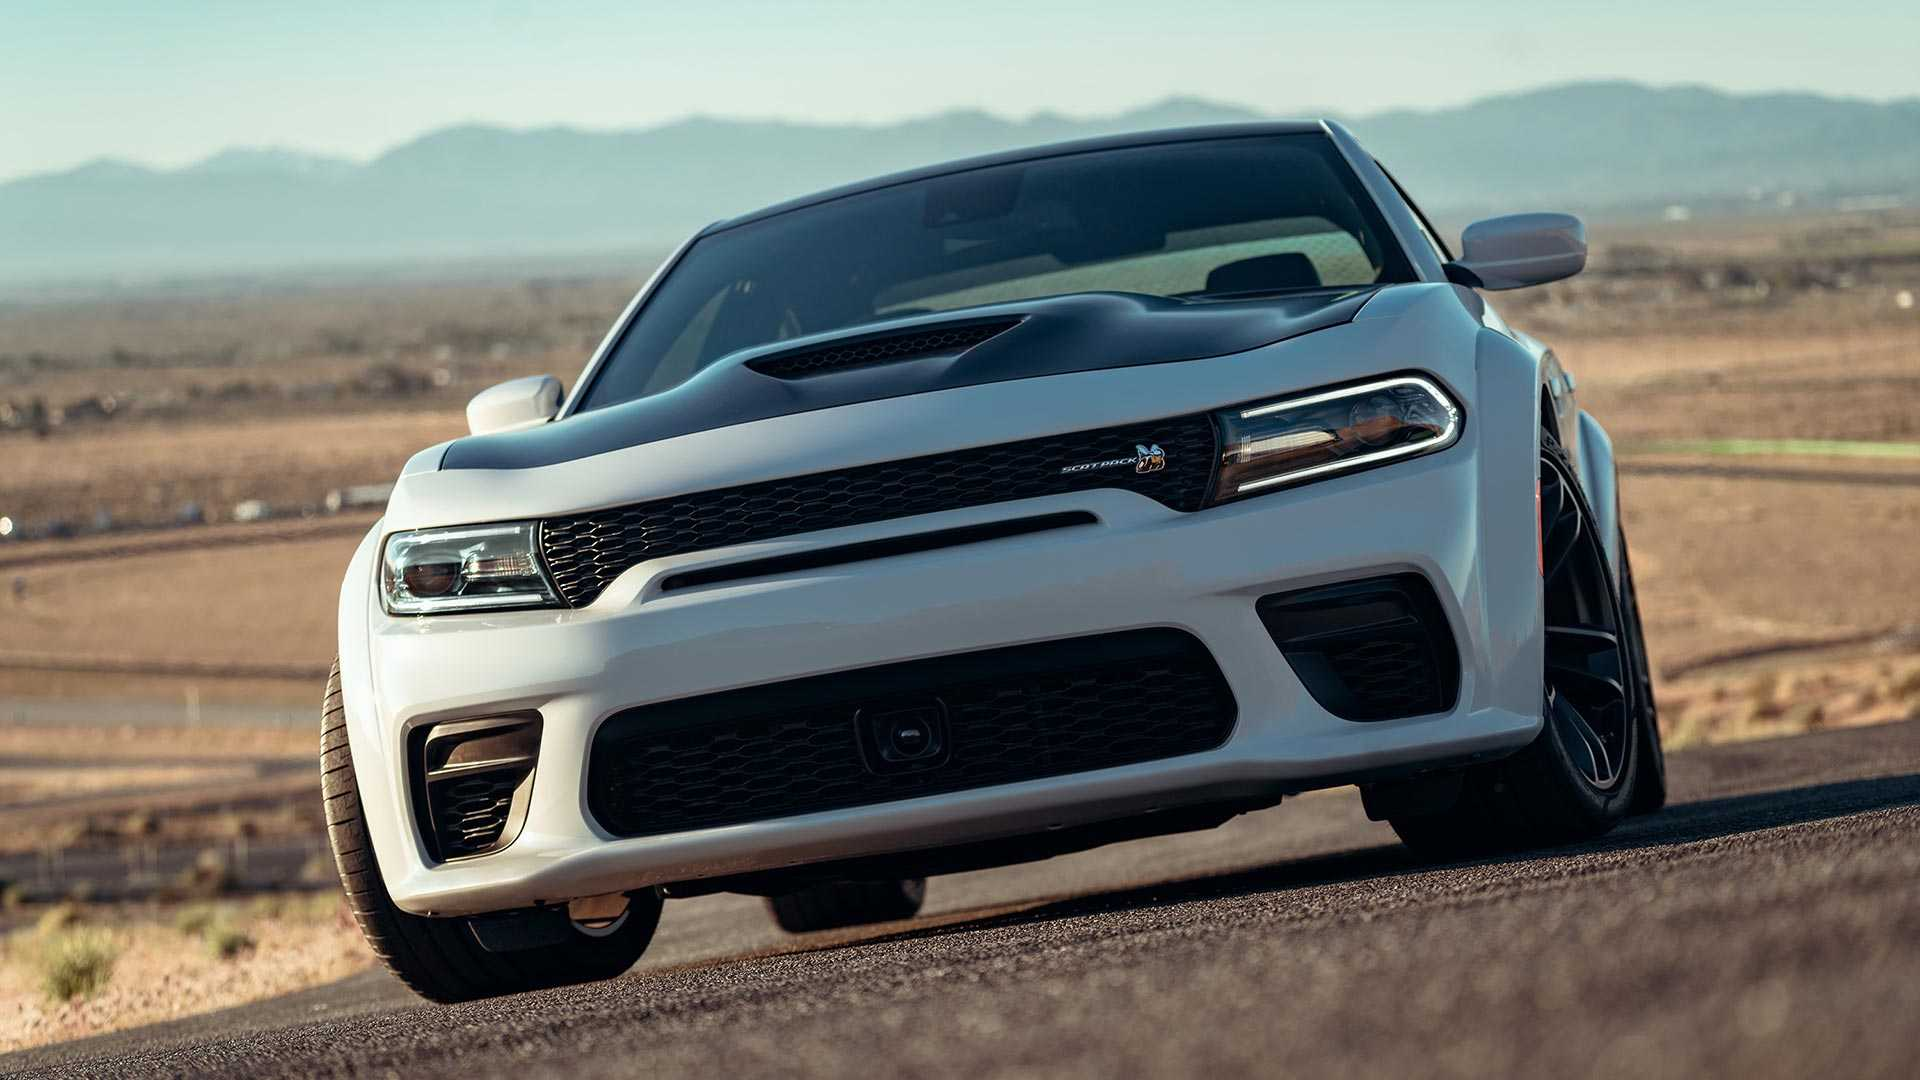 2020 Dodge Charger Scat Pack Widebody Front Wallpapers (9)